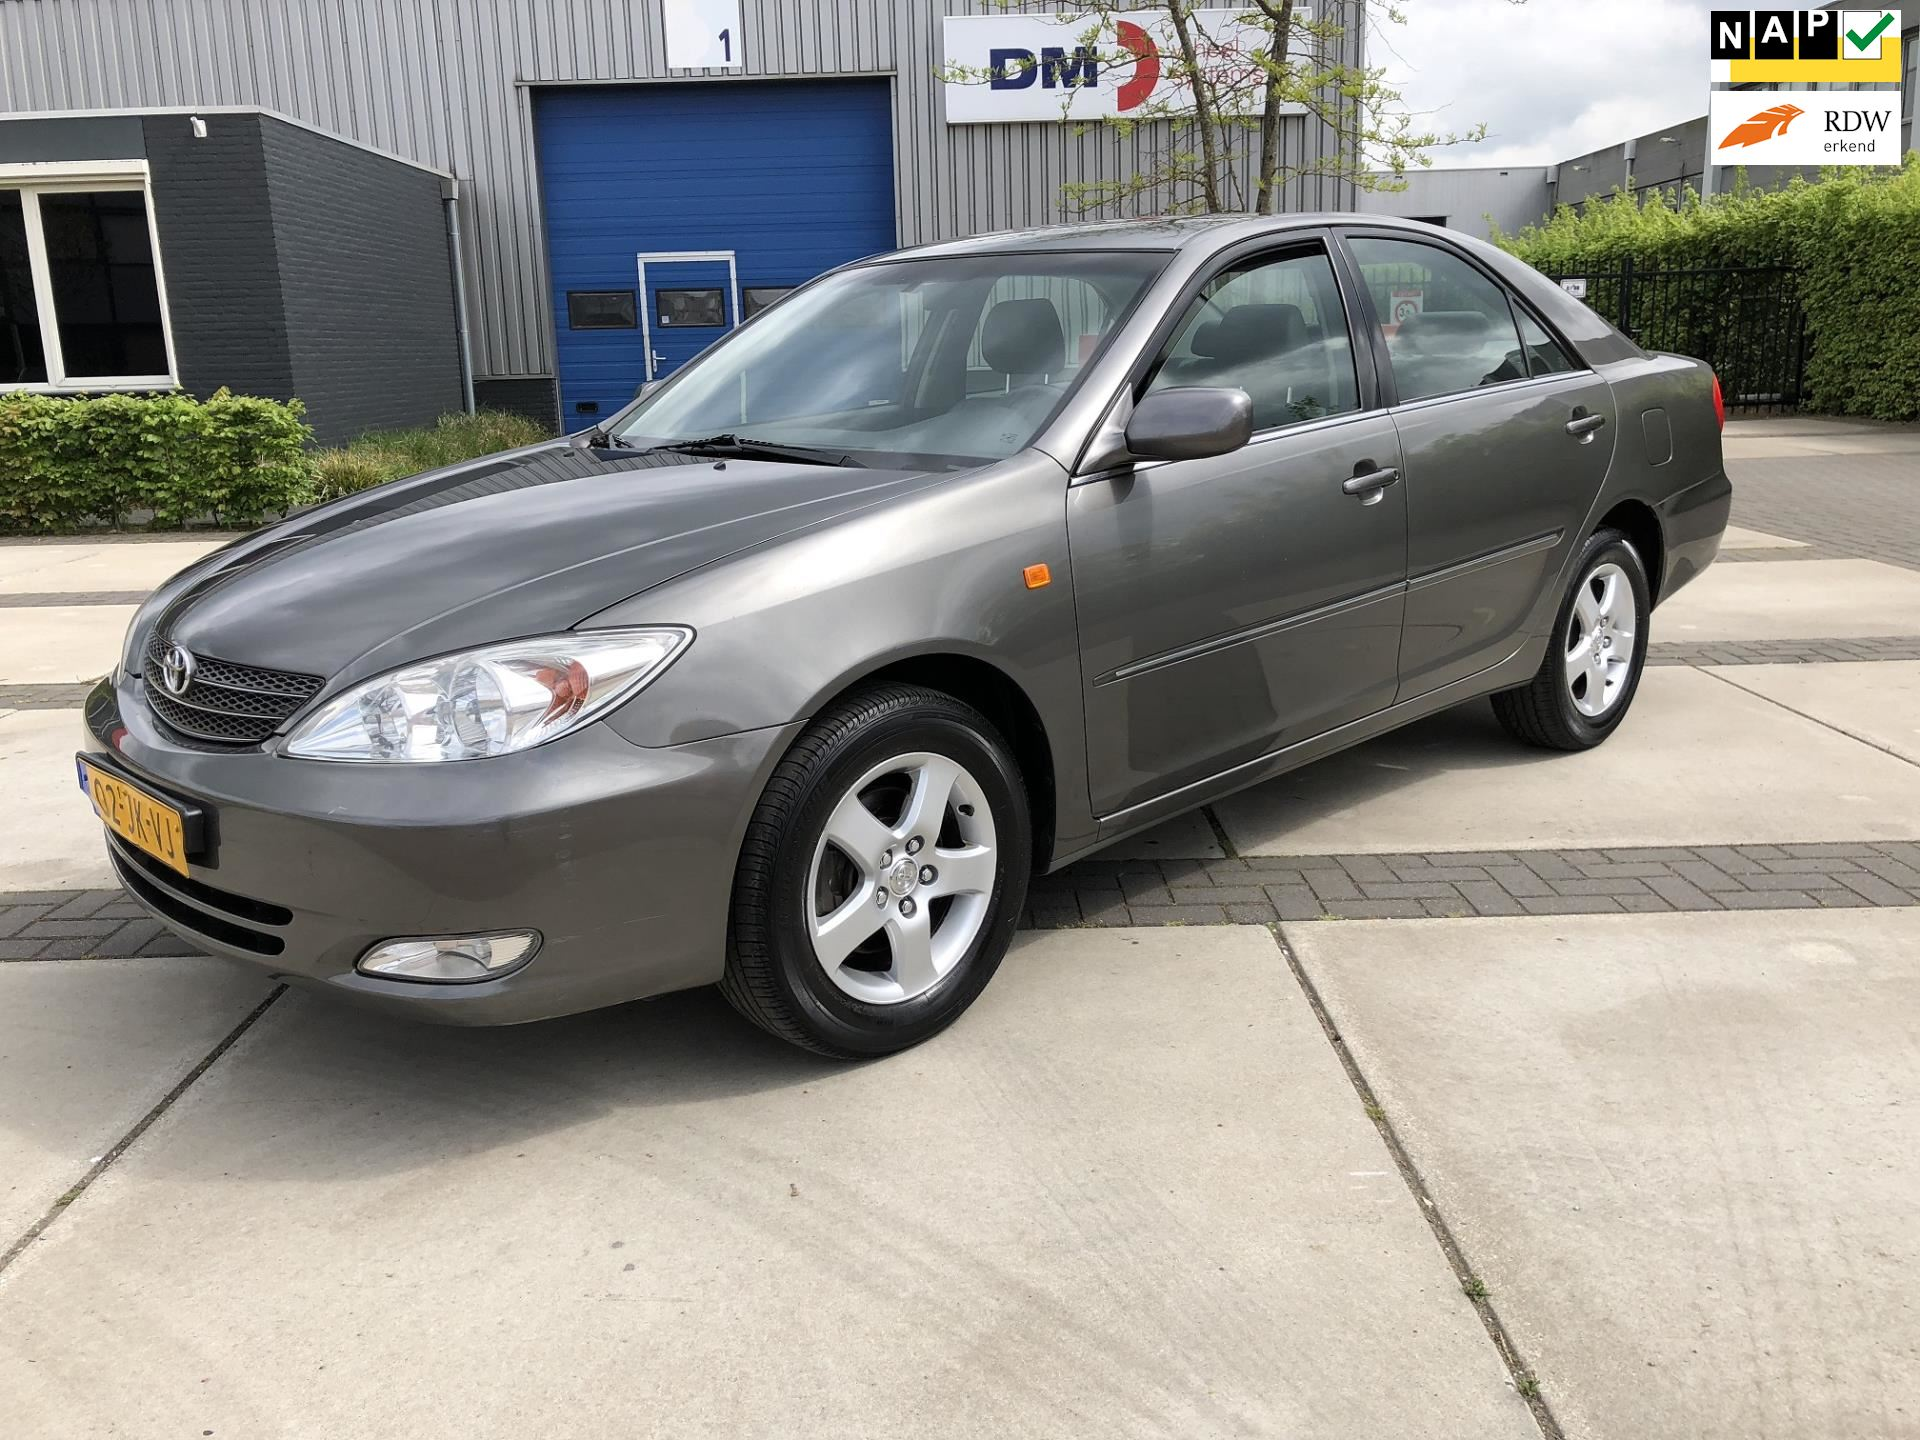 Toyota Camry occasion - A2 Auto's